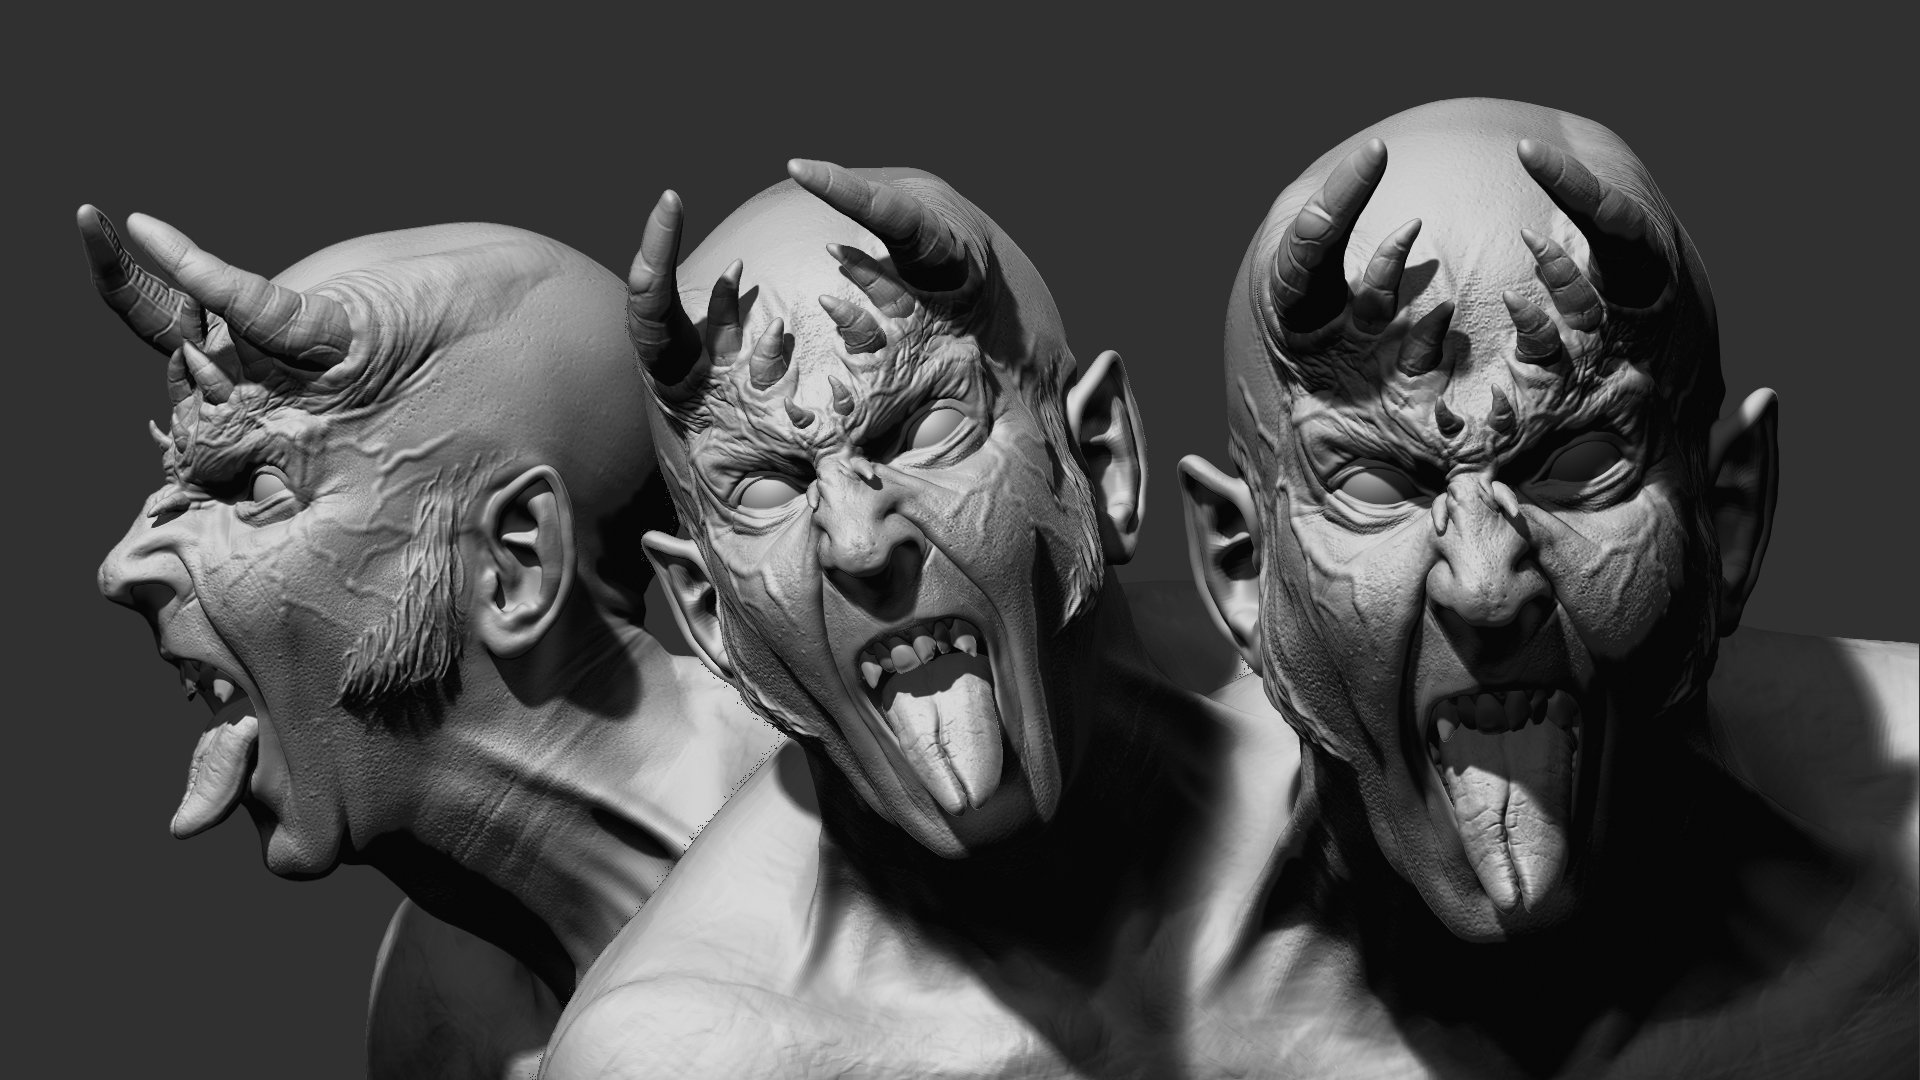 Rudy massar dark kiss demon portrait wip